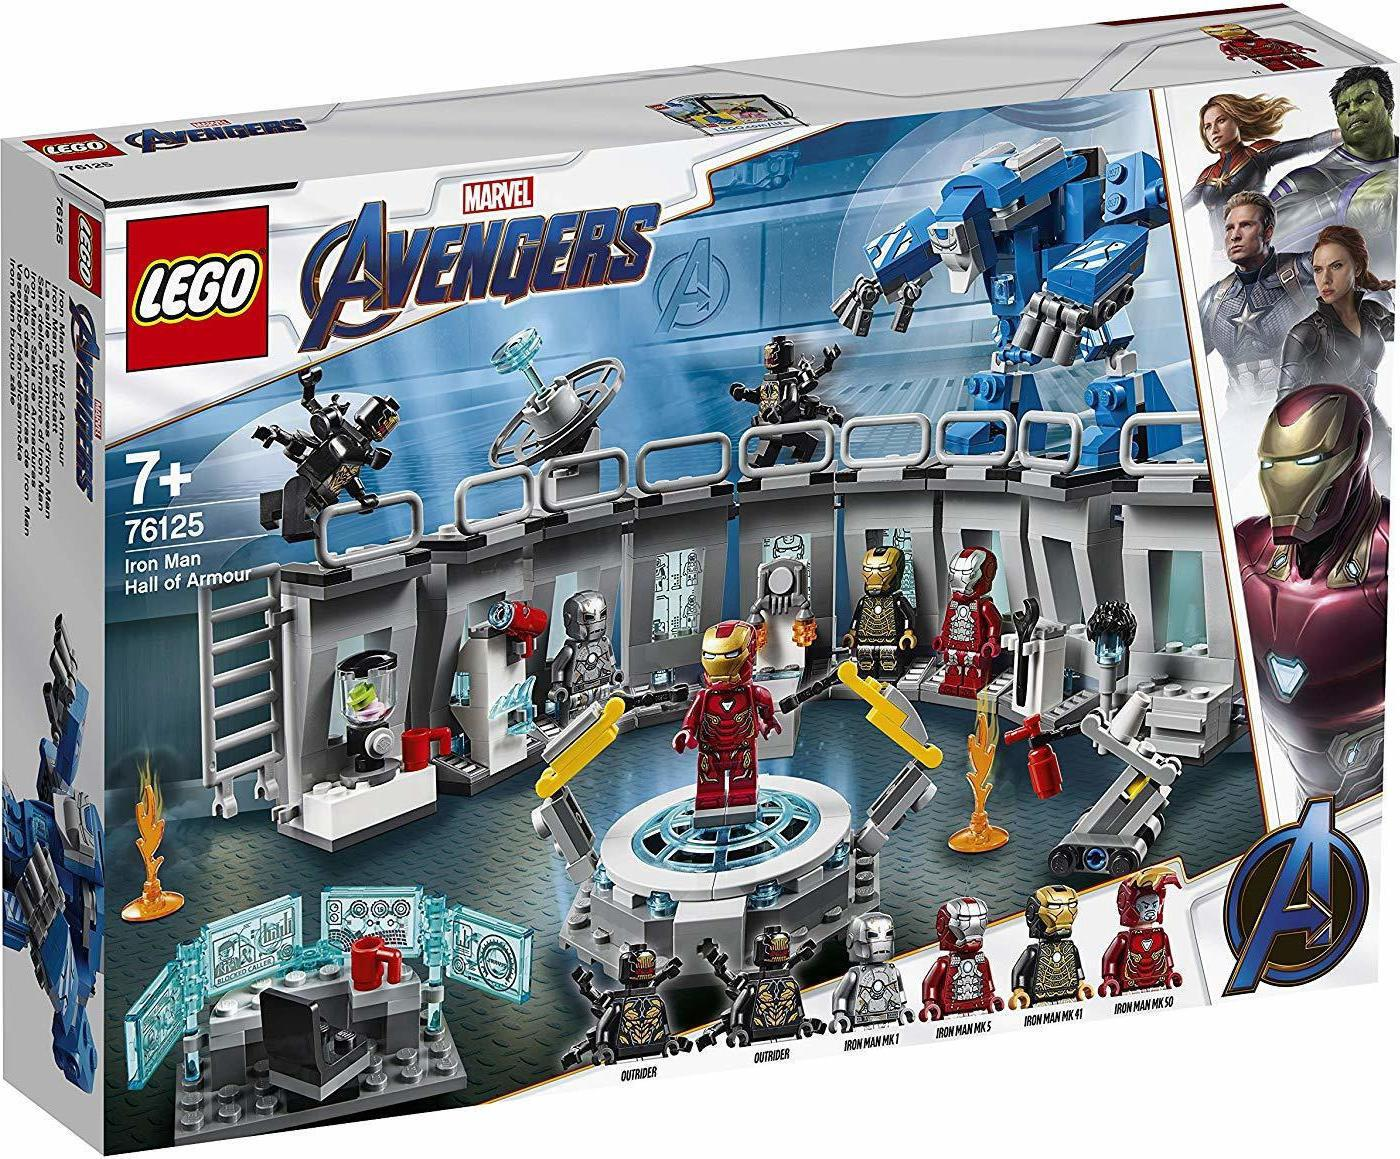 Lego Super Heroes Iron Man Location (76125)